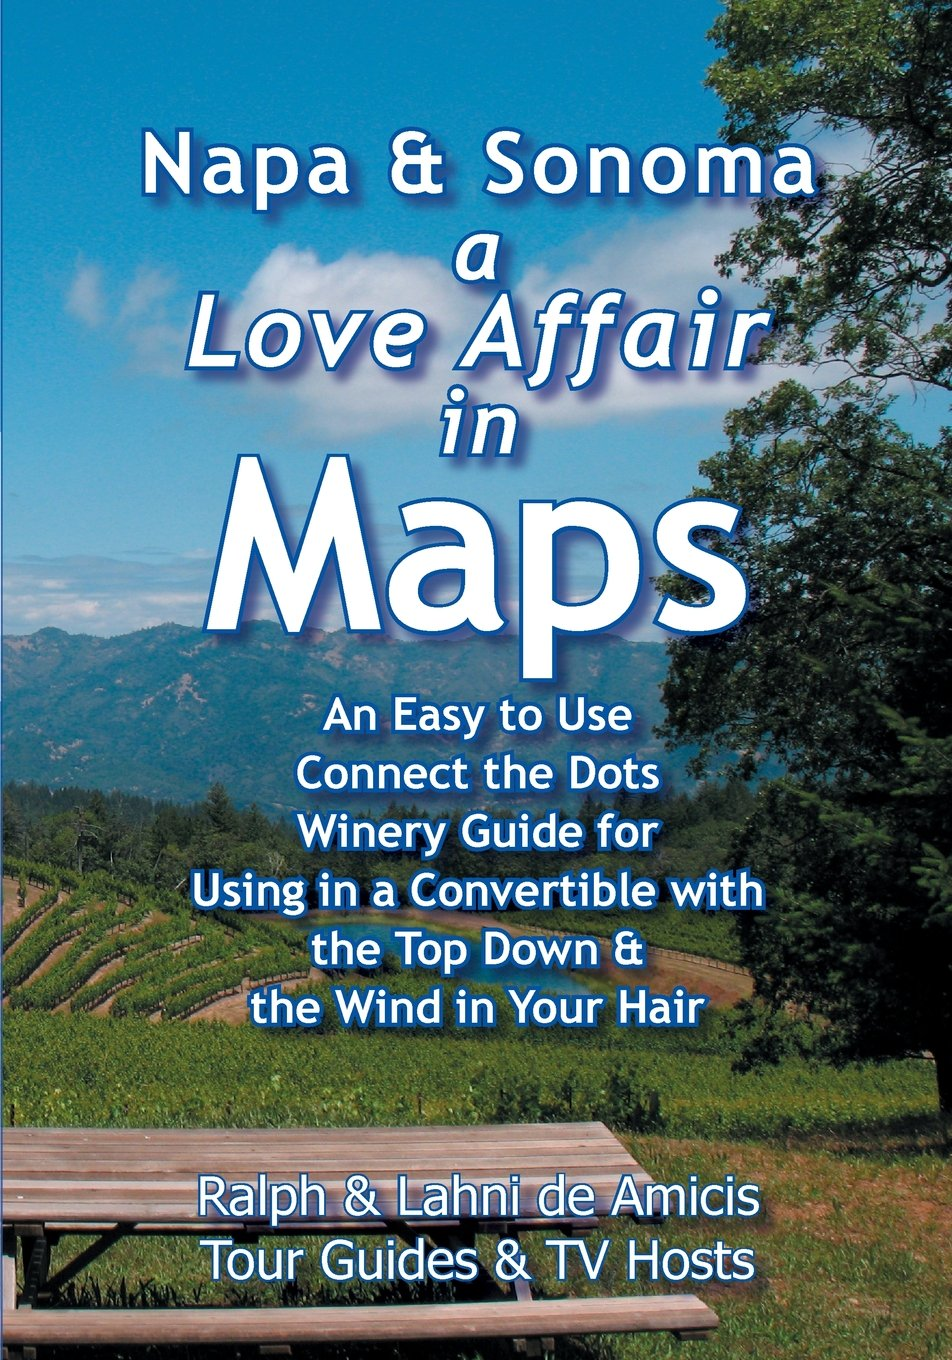 Napa & Sonoma, a Love Affair in Maps: An Easy to Use, Connect the Dots Winery Guide for Using in a Convertible with the Top Down & the Wind in Your Hair (Amicis Winery Guides) pdf